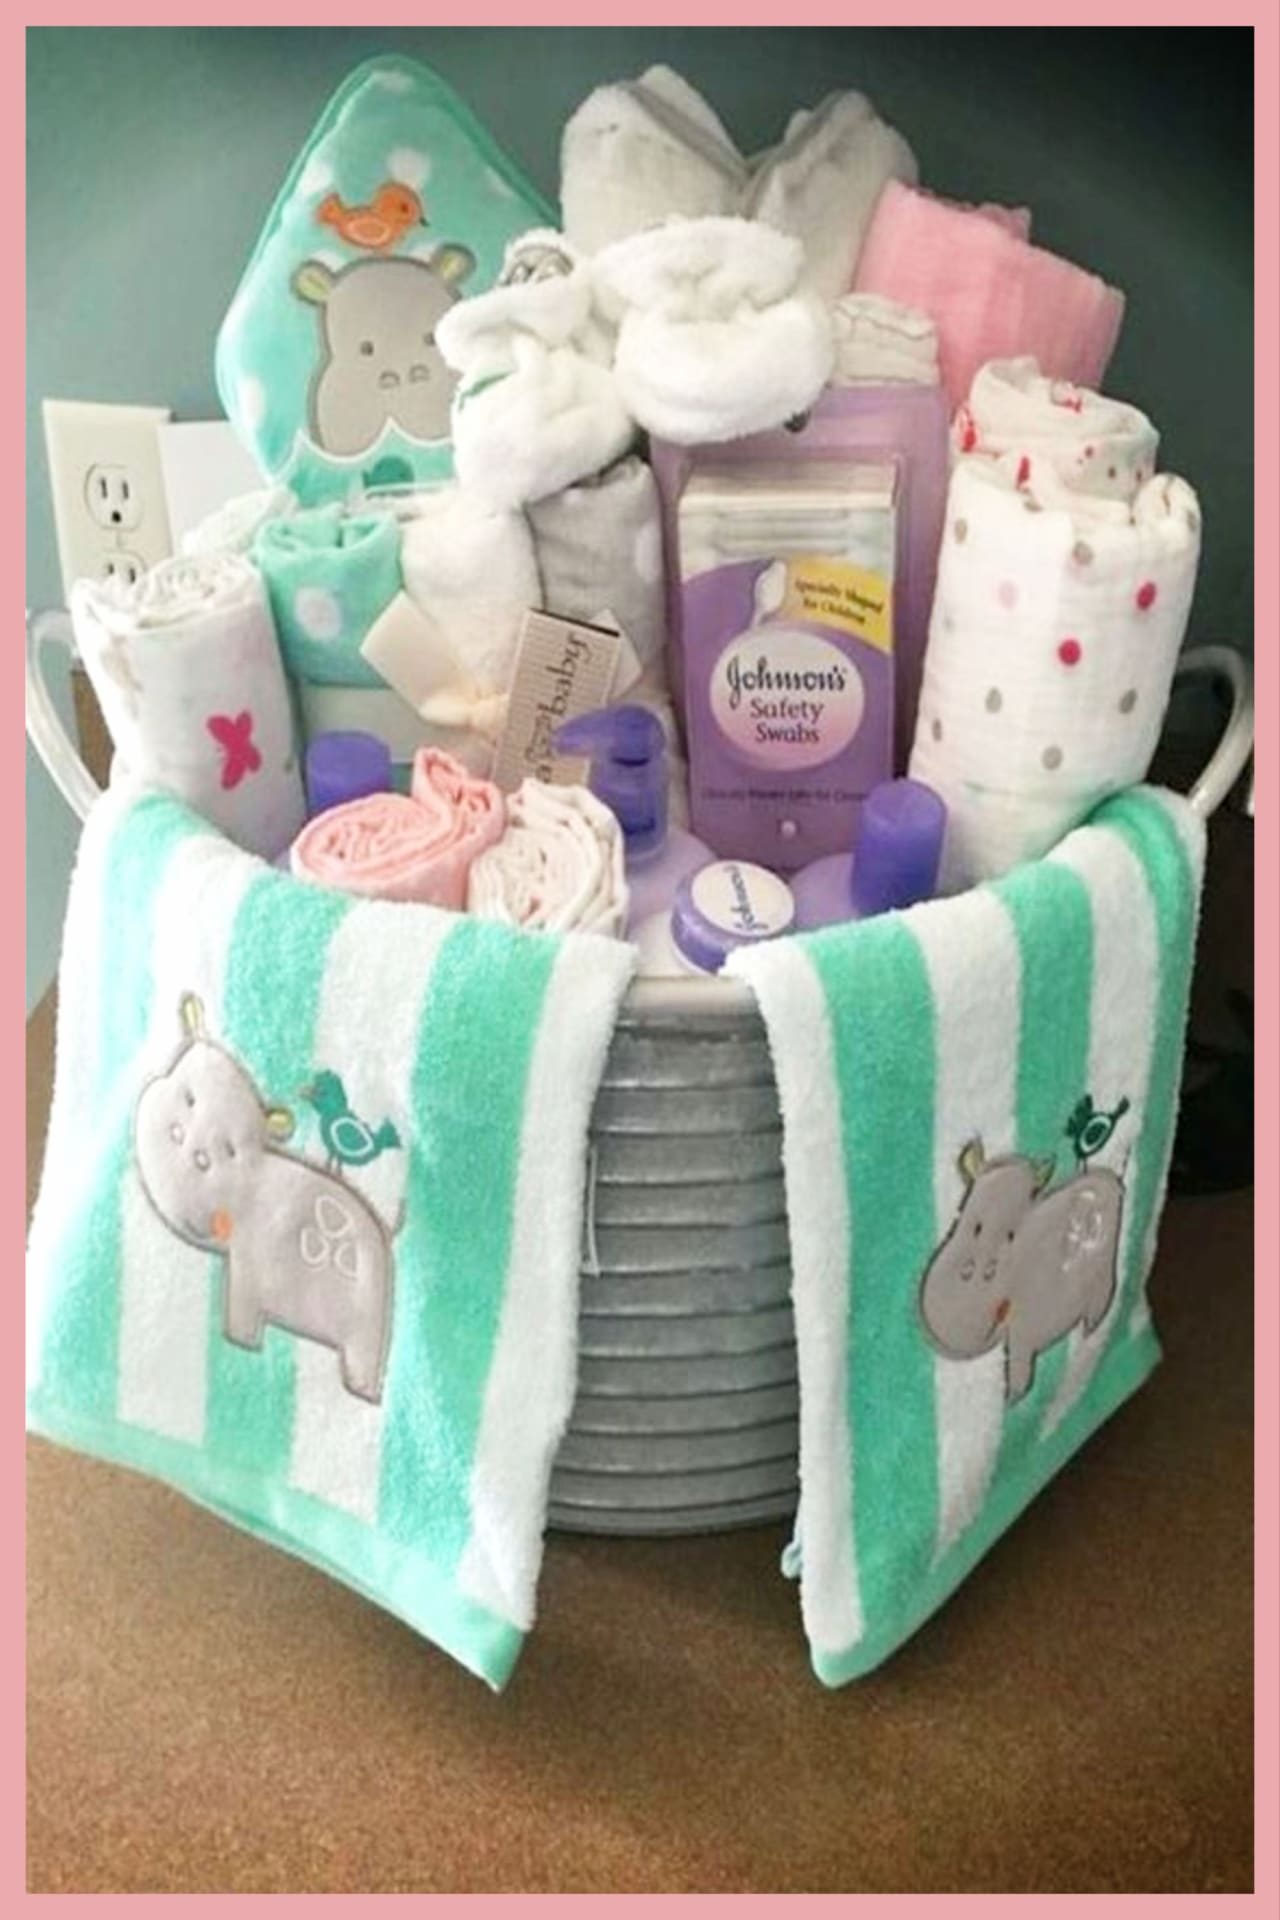 Baby shower gift basket ideas - unique and easy DIY baby shower gift ideas for unknown gender